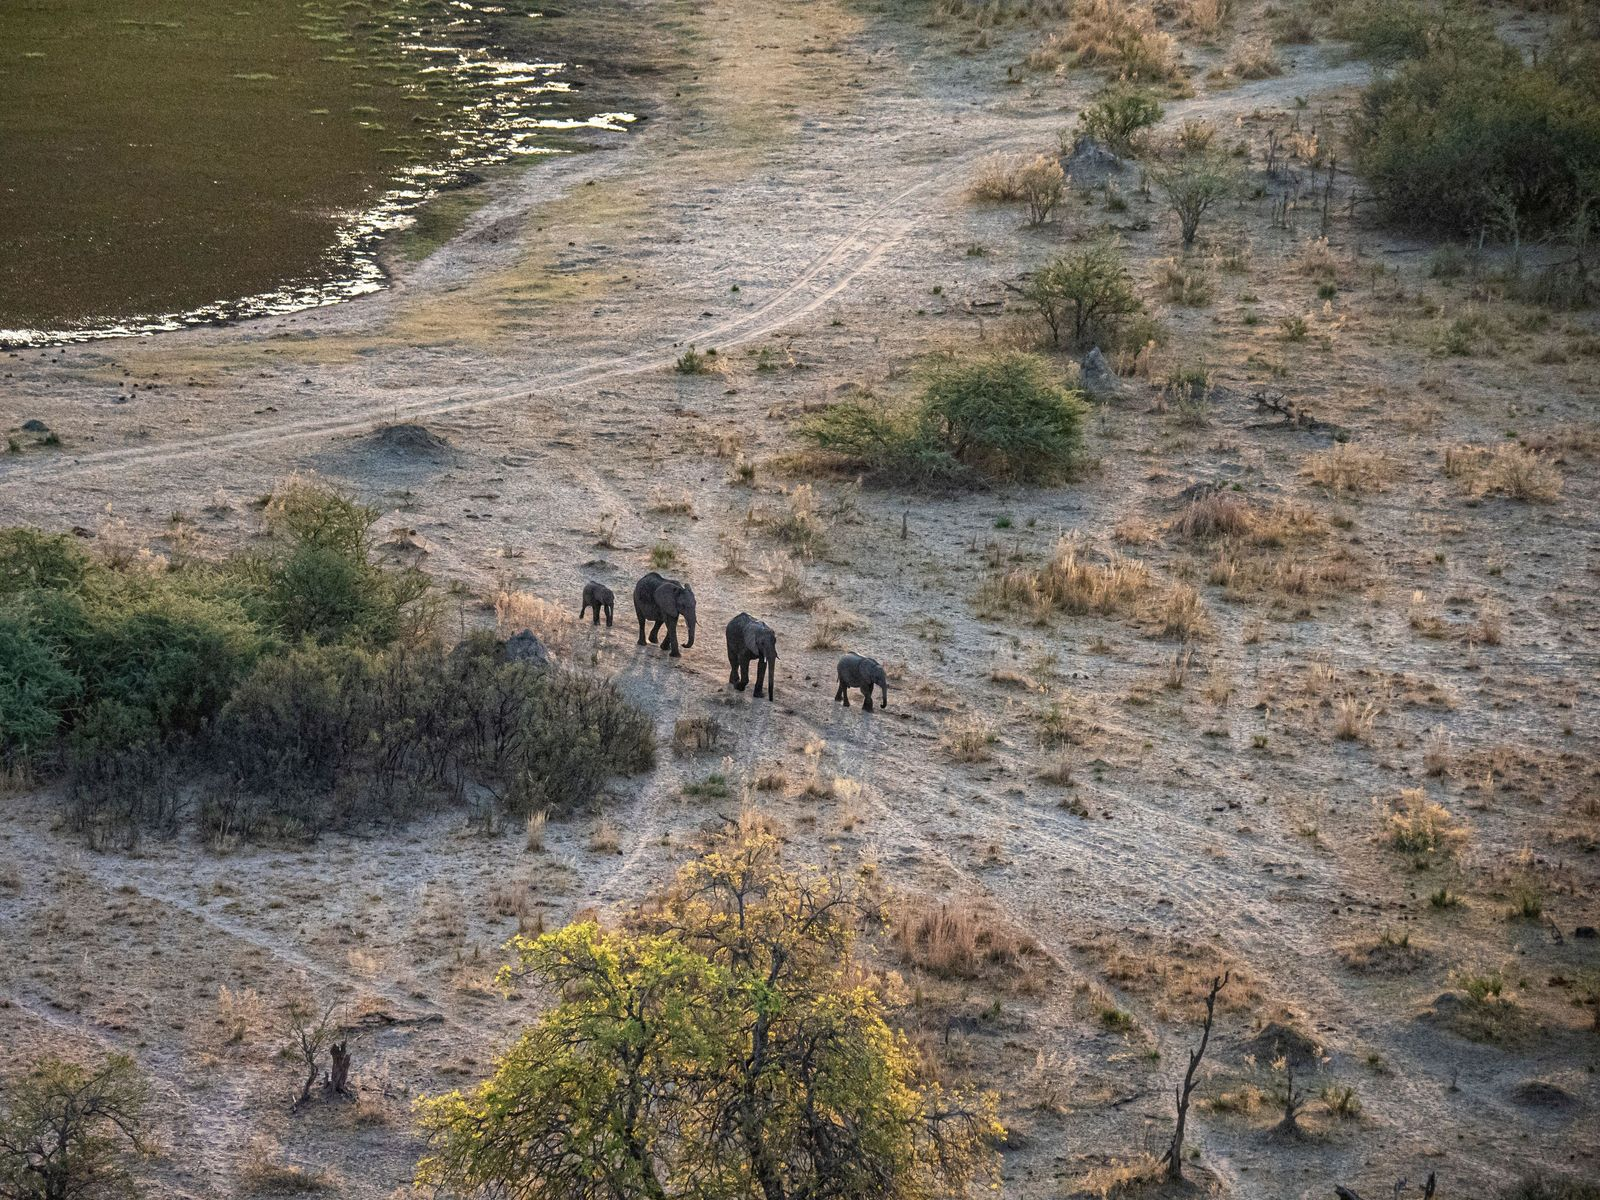 Aerial view of African elephants, in the Okavango Delta, Botswana. The region has been referred to as ...